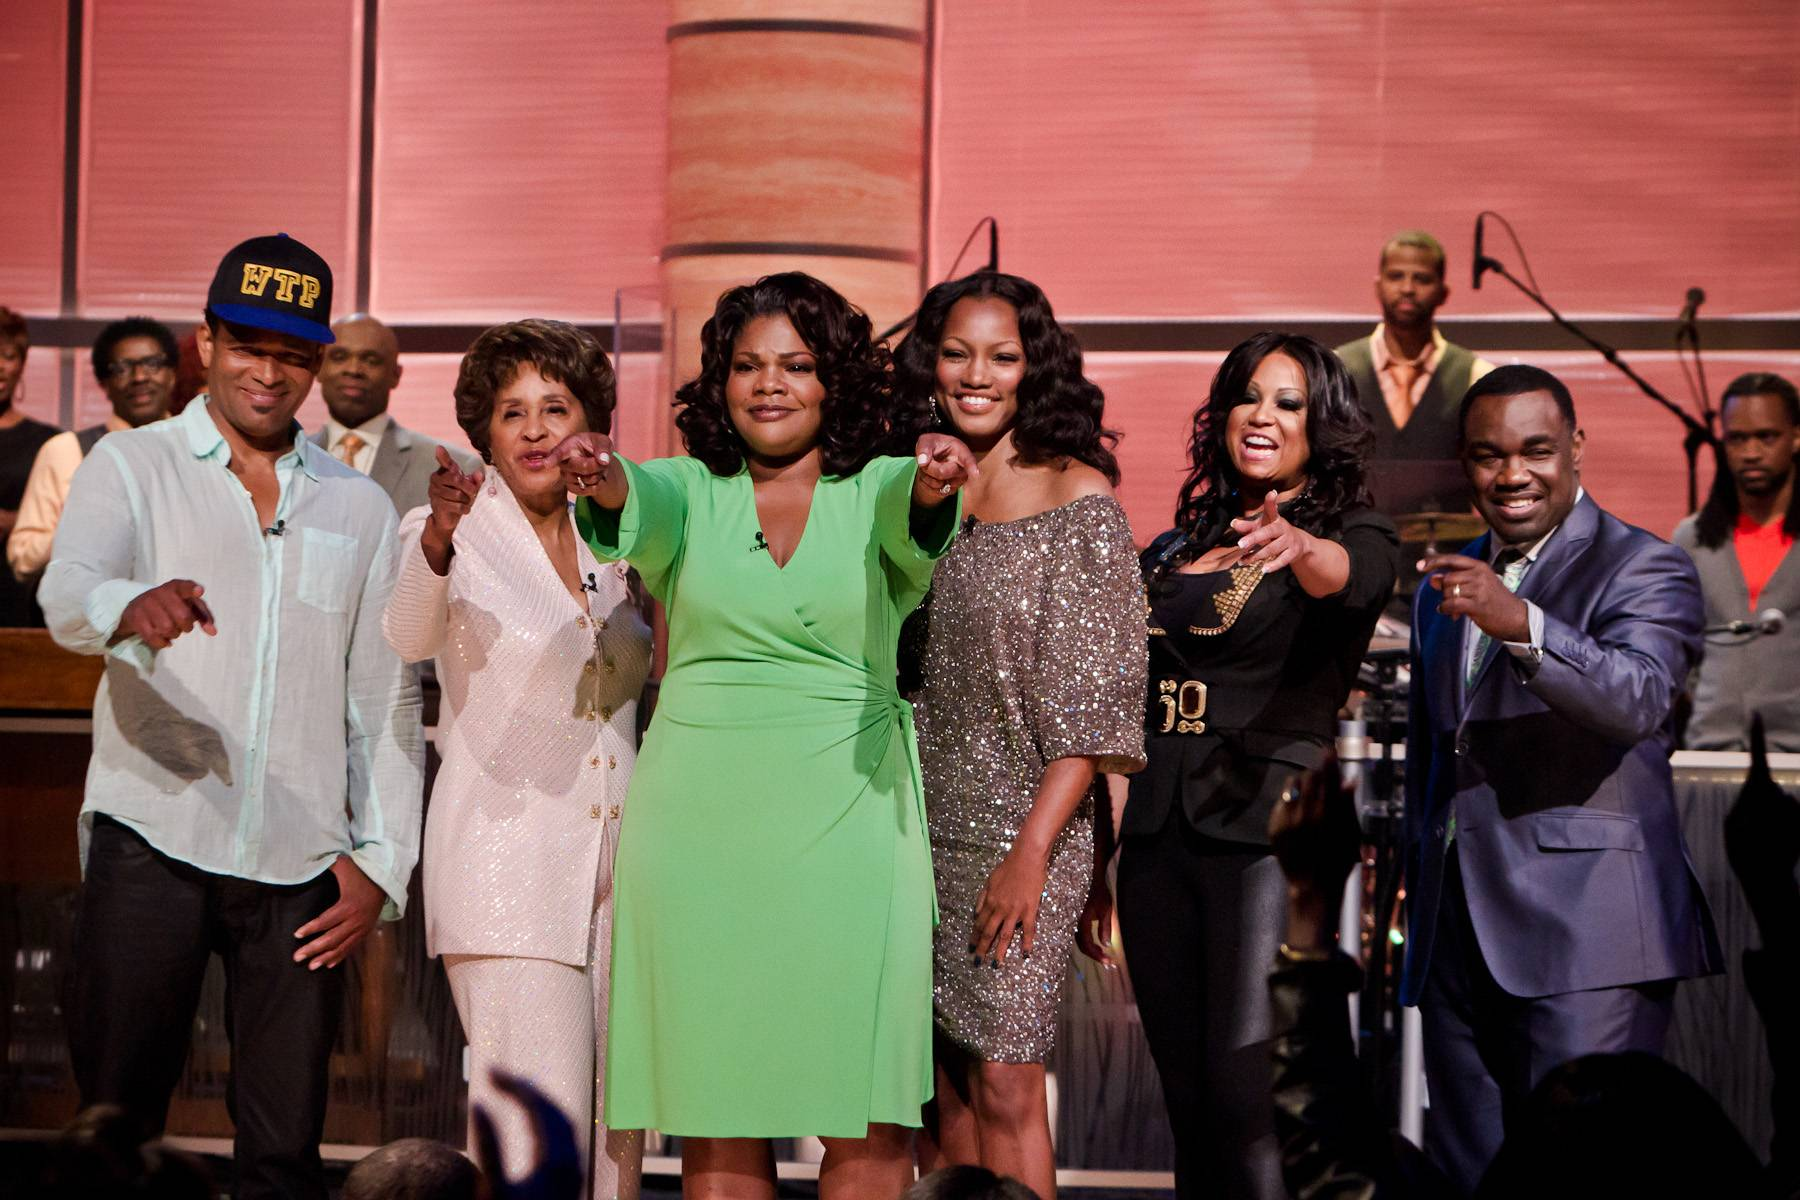 Farewell to Another Great Episode - From left: It's a wrap! Mario Van Peebles, Marla Gibbs, Mo'Nique, Garcelle Beauvais, CeCe Peniston and Rodney Perry.(Photo: Darnell Williams/BET)